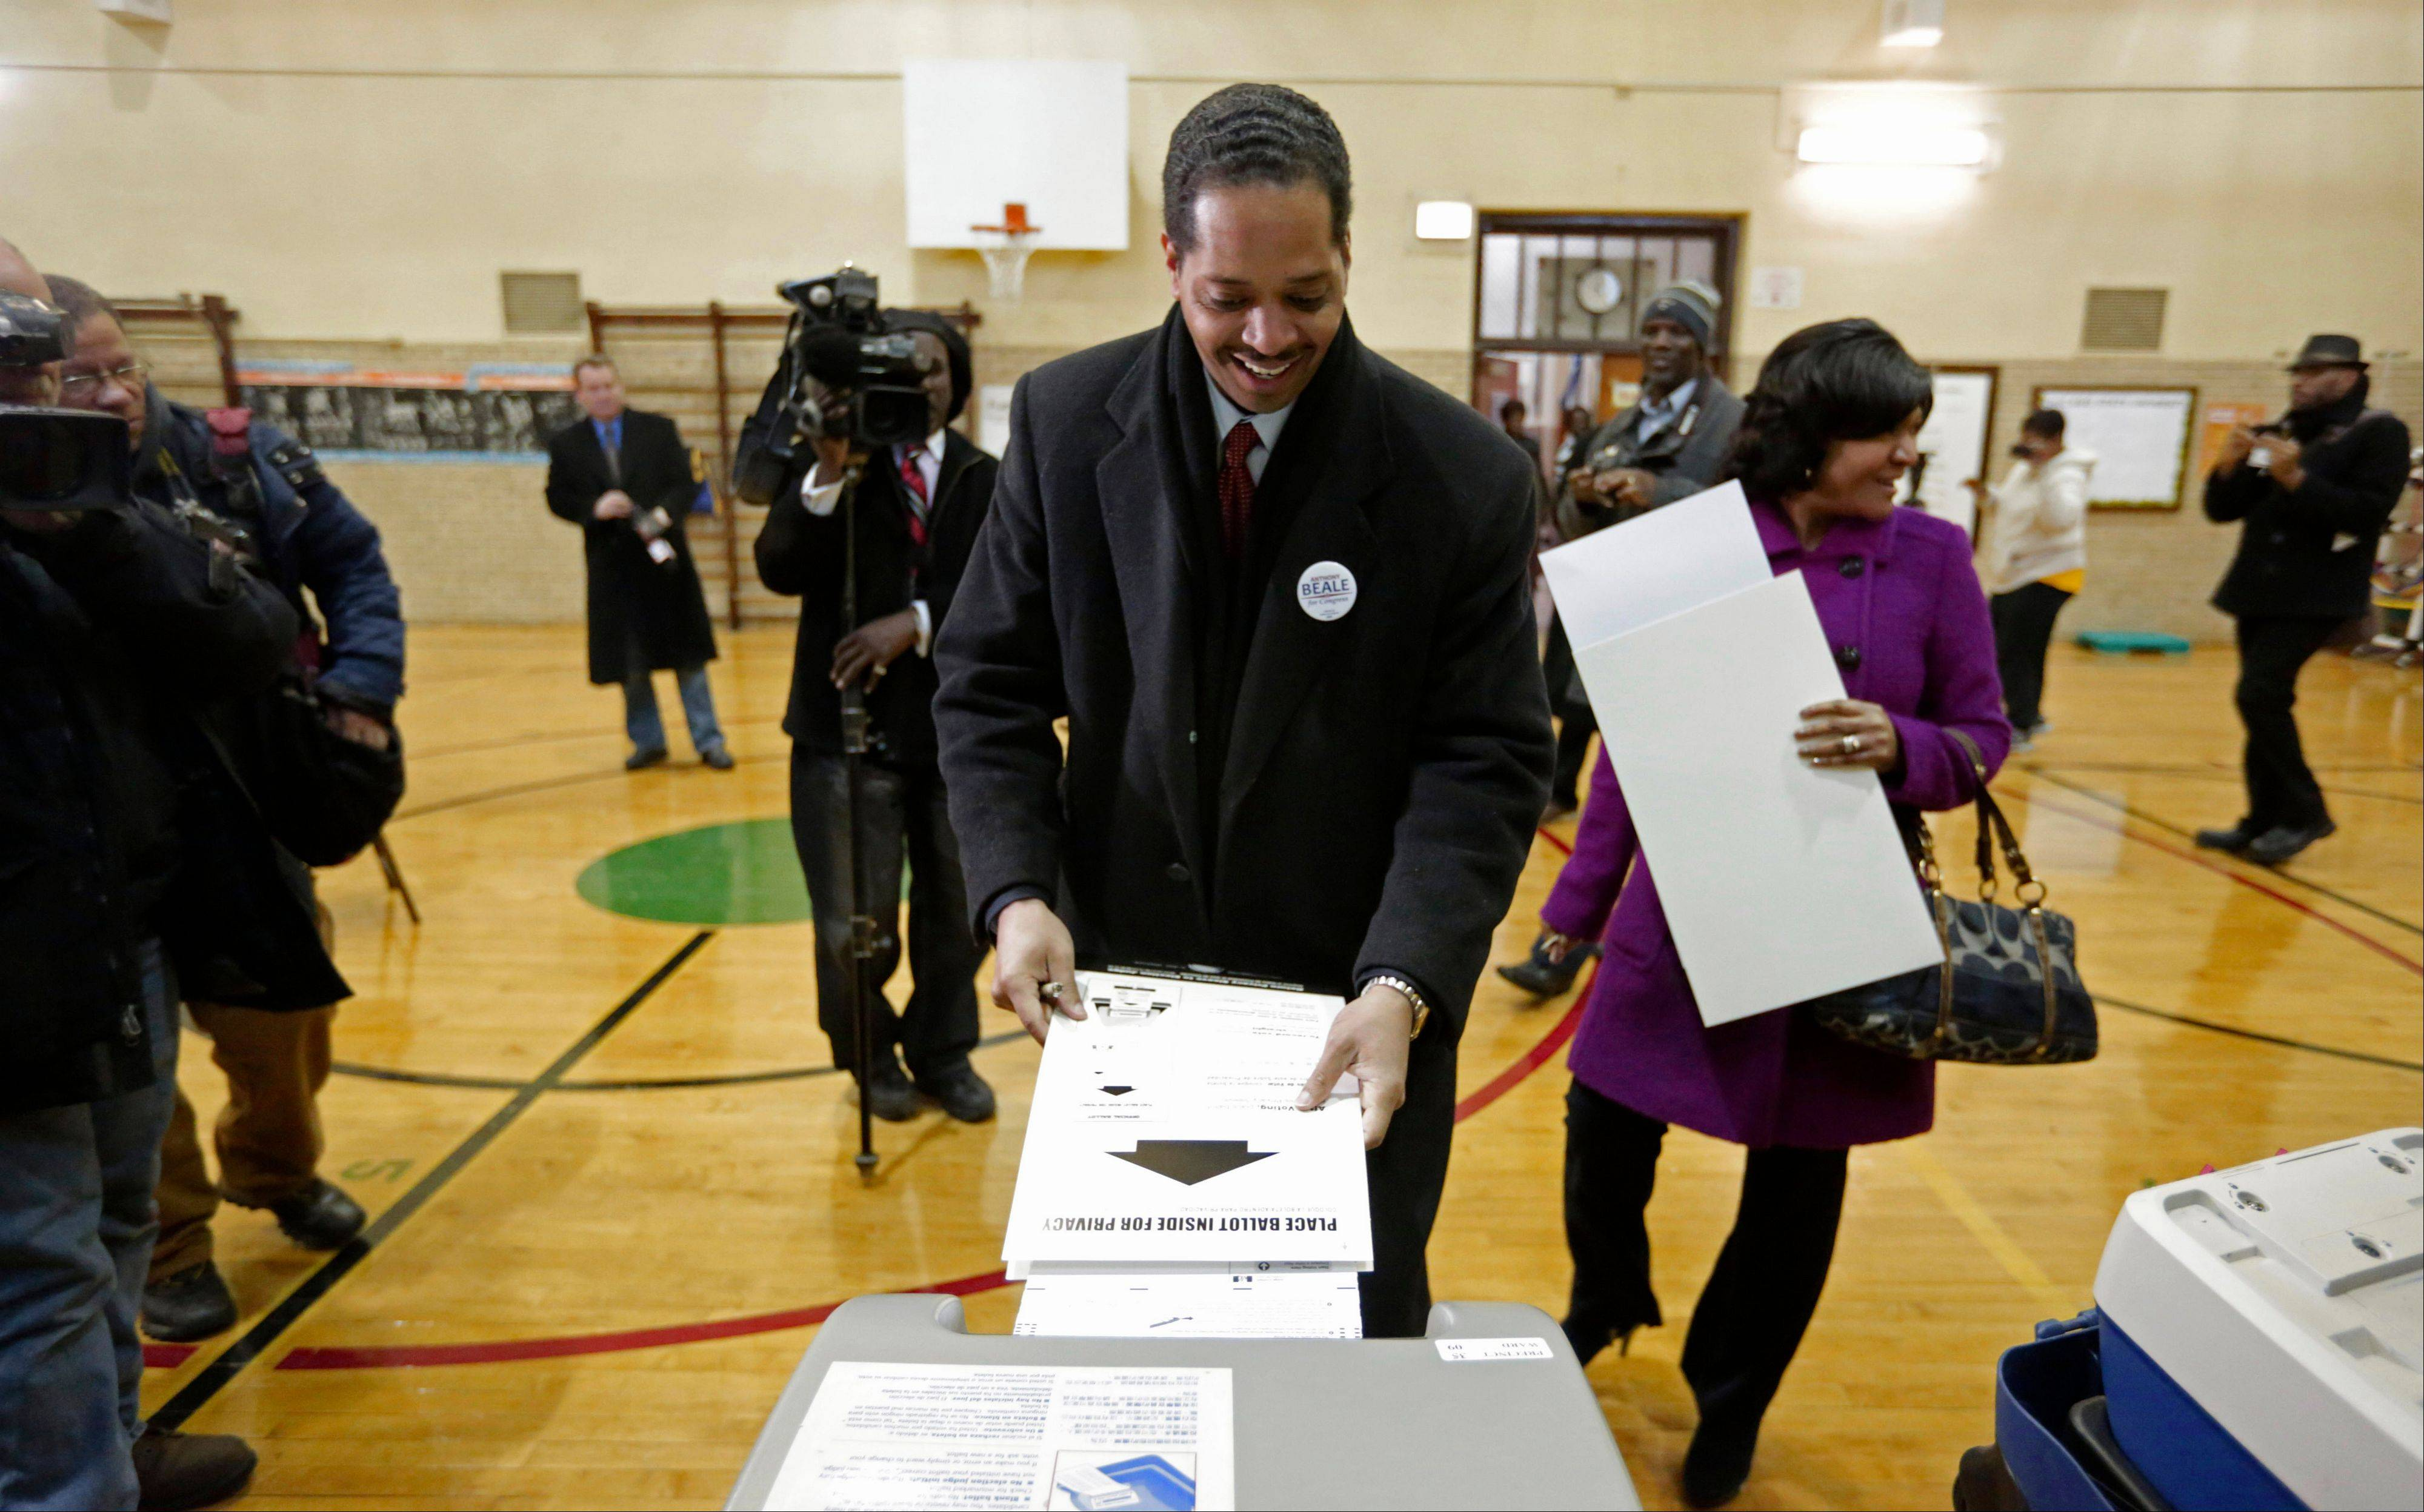 Chicago Alderman Anthony Beale, a Democrat, casts his vote in Tuesday's special primary election to replace former U.S. Rep. Jesse Jackson in Illinois' 2nd Congressional District.